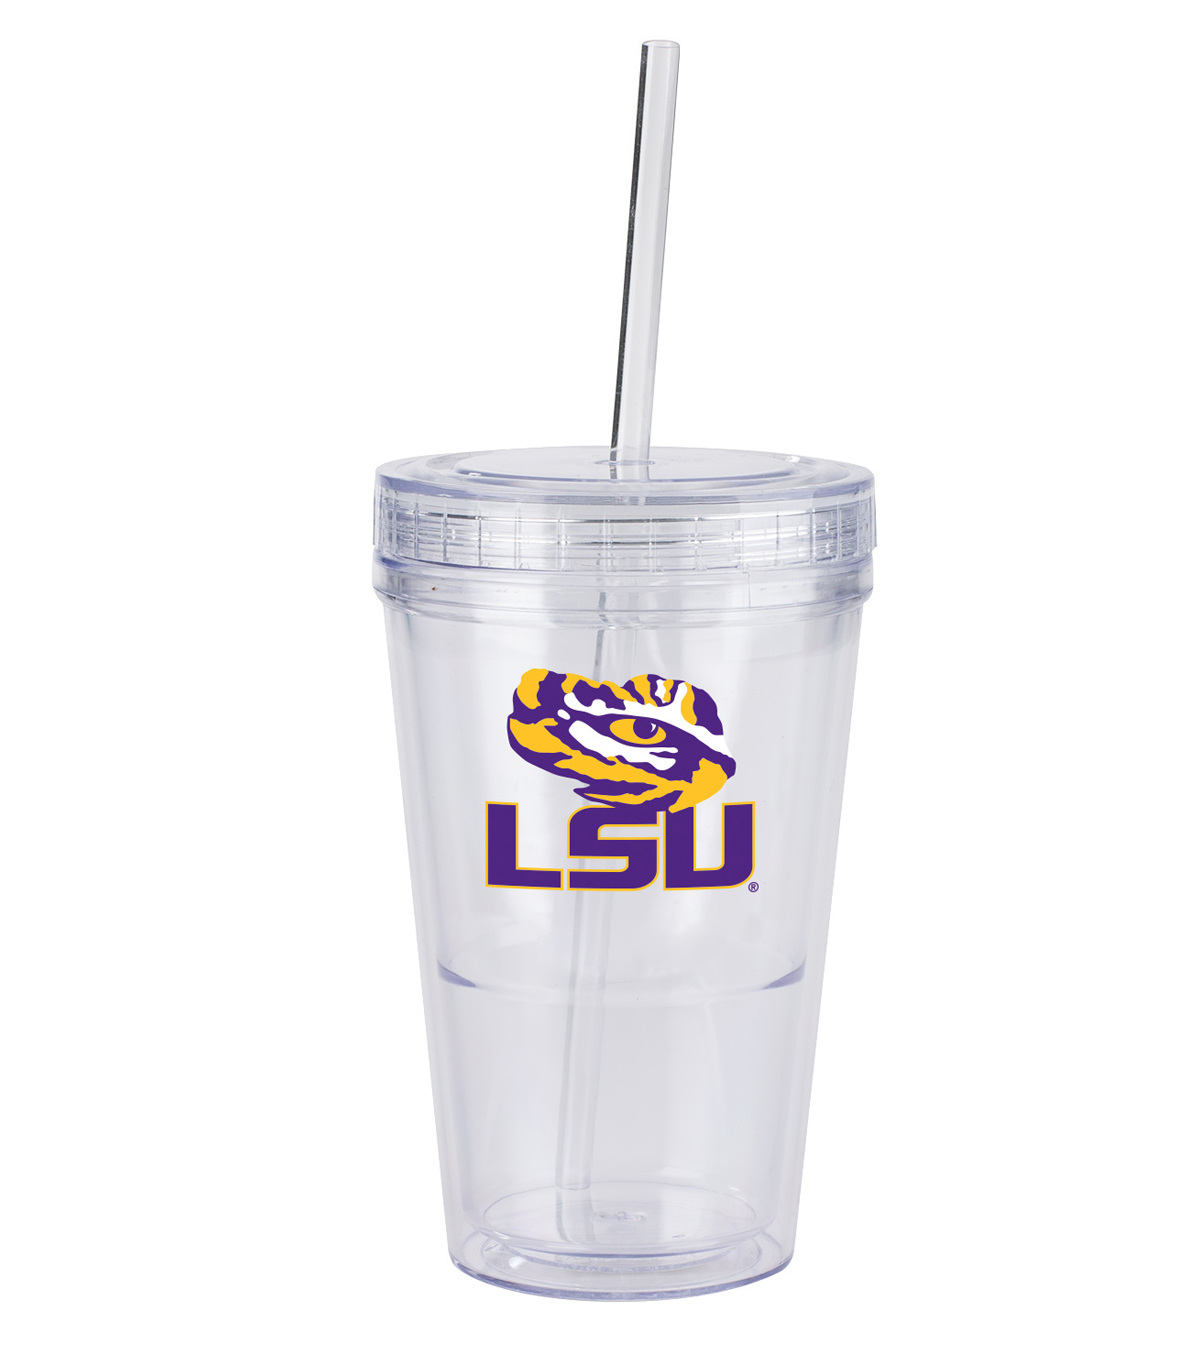 Louisiana State University Tigers 16oz Cup